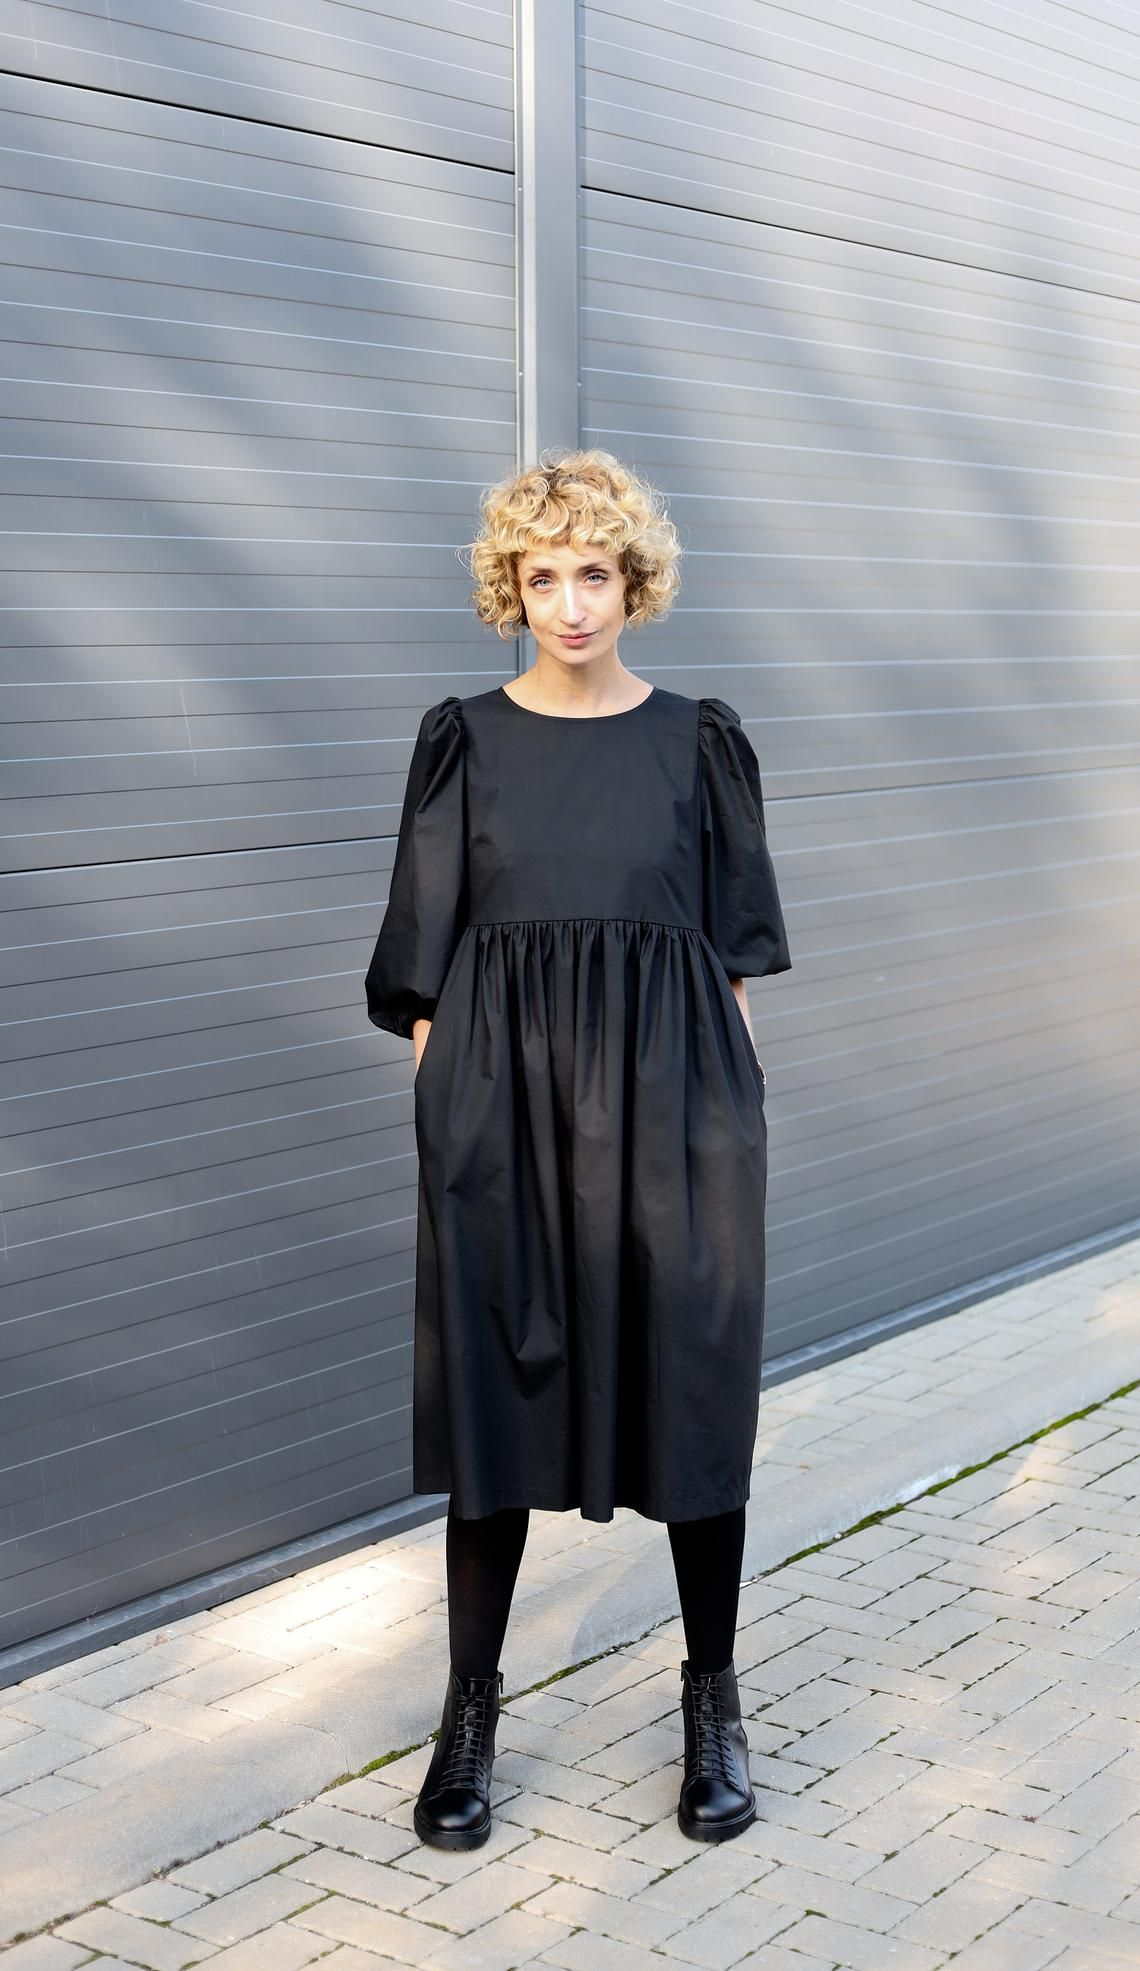 Puffy Sleeve Dress Empire Waist Black Cotton Poplin Dress Etsy Balloon Sleeve Dress Poplin Dress Dresses With Sleeves [ 1971 x 1140 Pixel ]